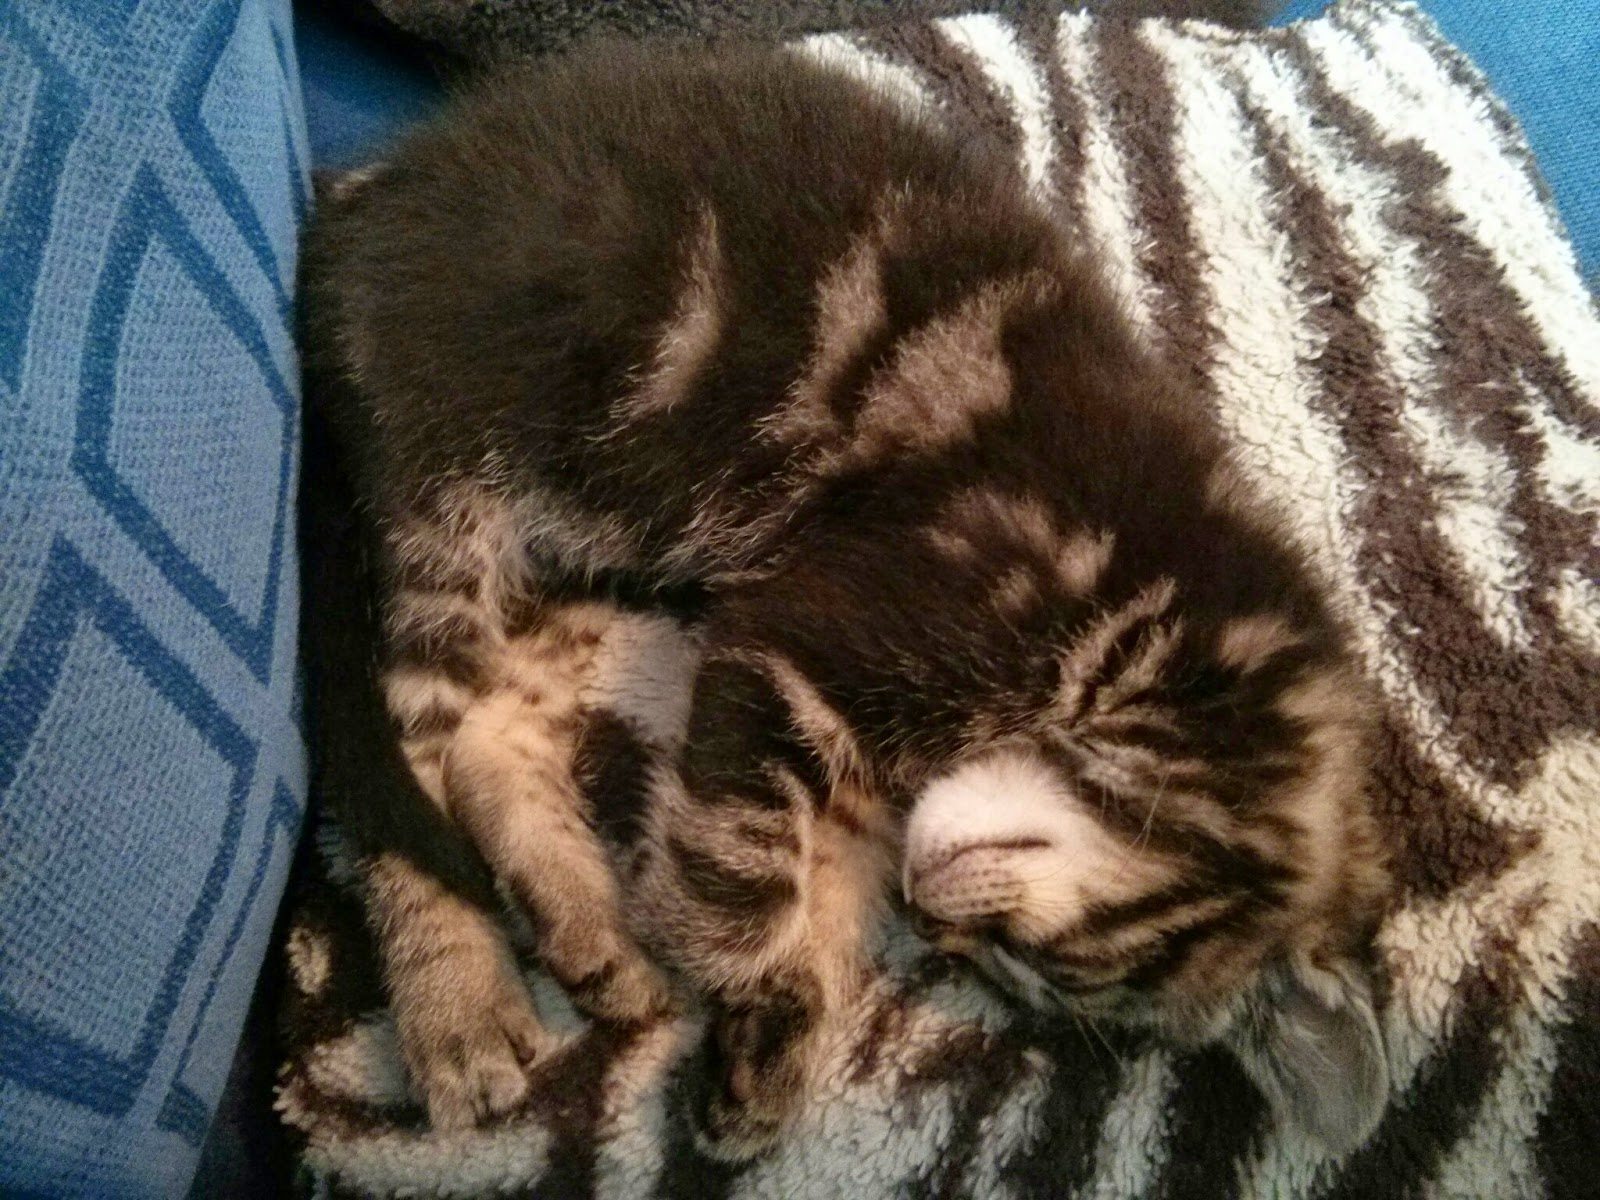 Mario The Kitten sleeping